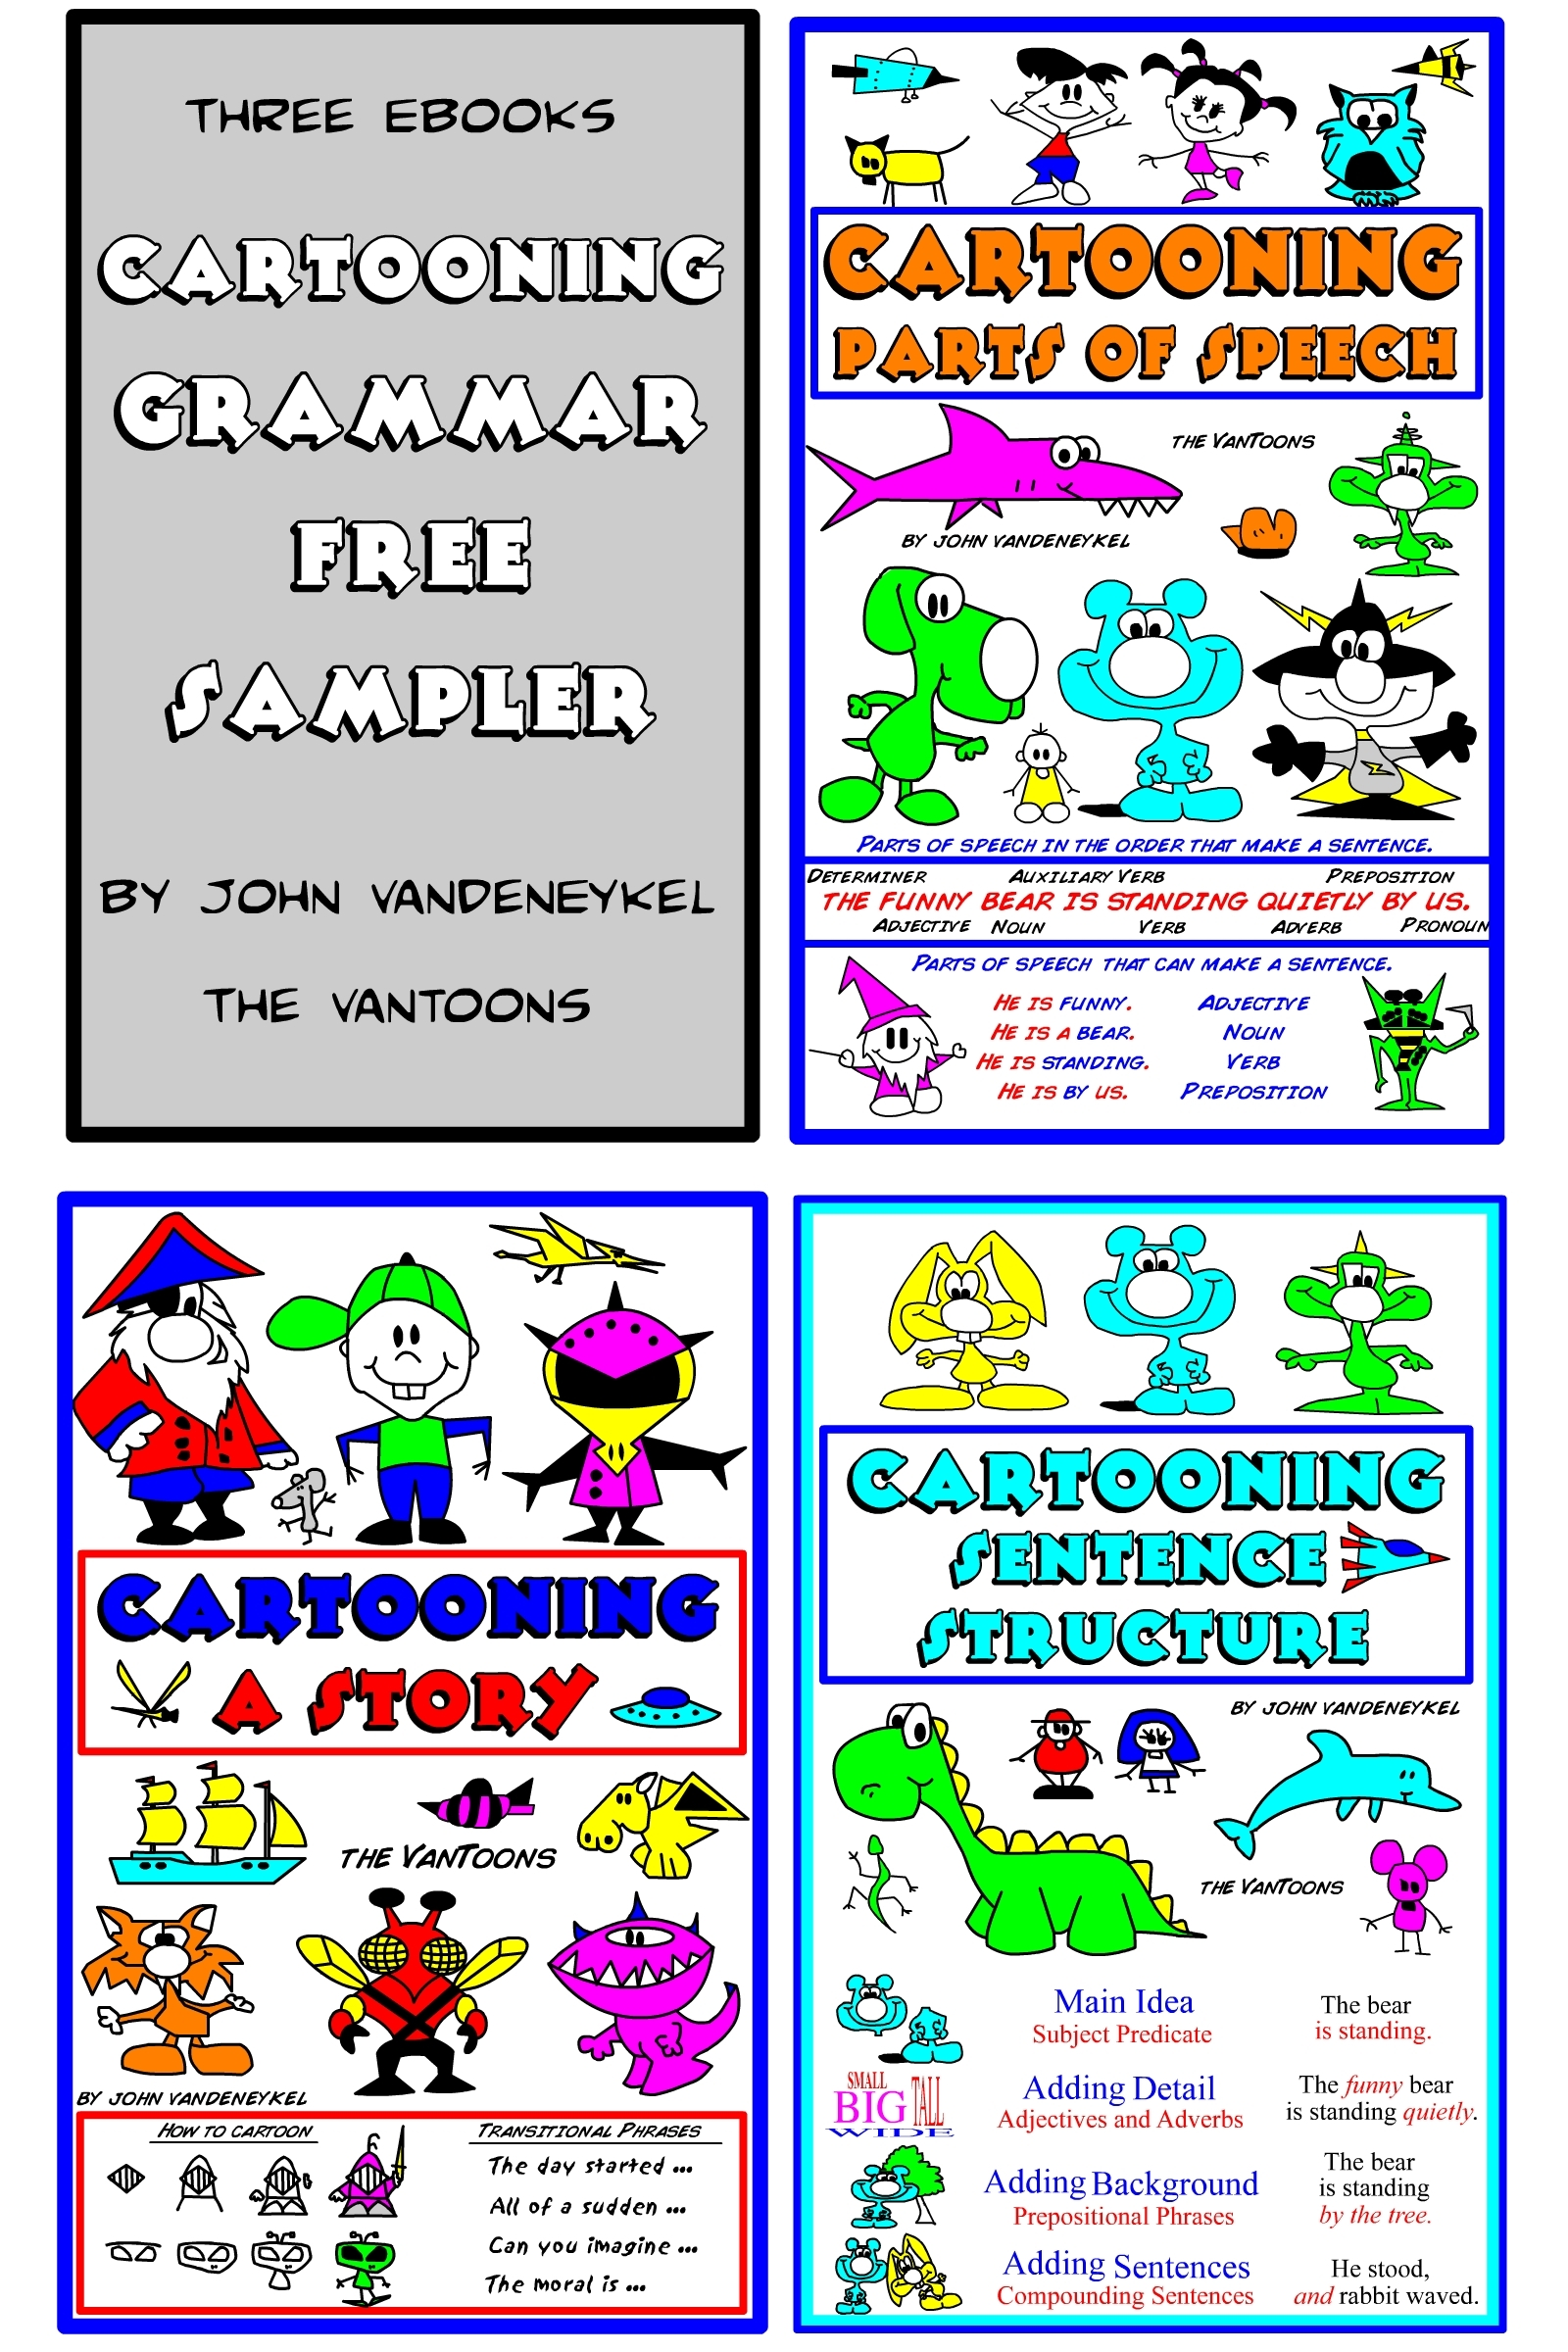 Cartooning Grammar Free Sampler